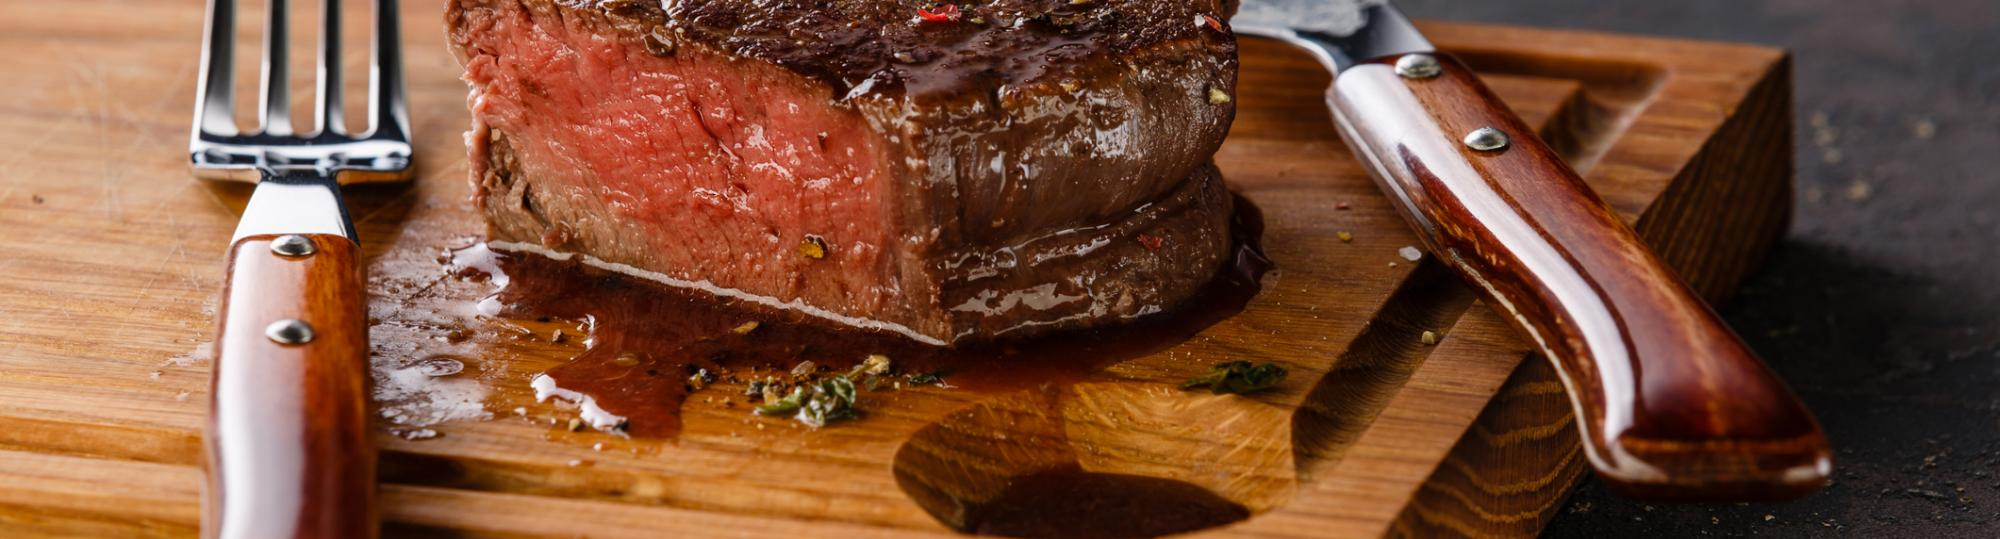 Omaha Steaks Military Discounts with Veterans Advantage